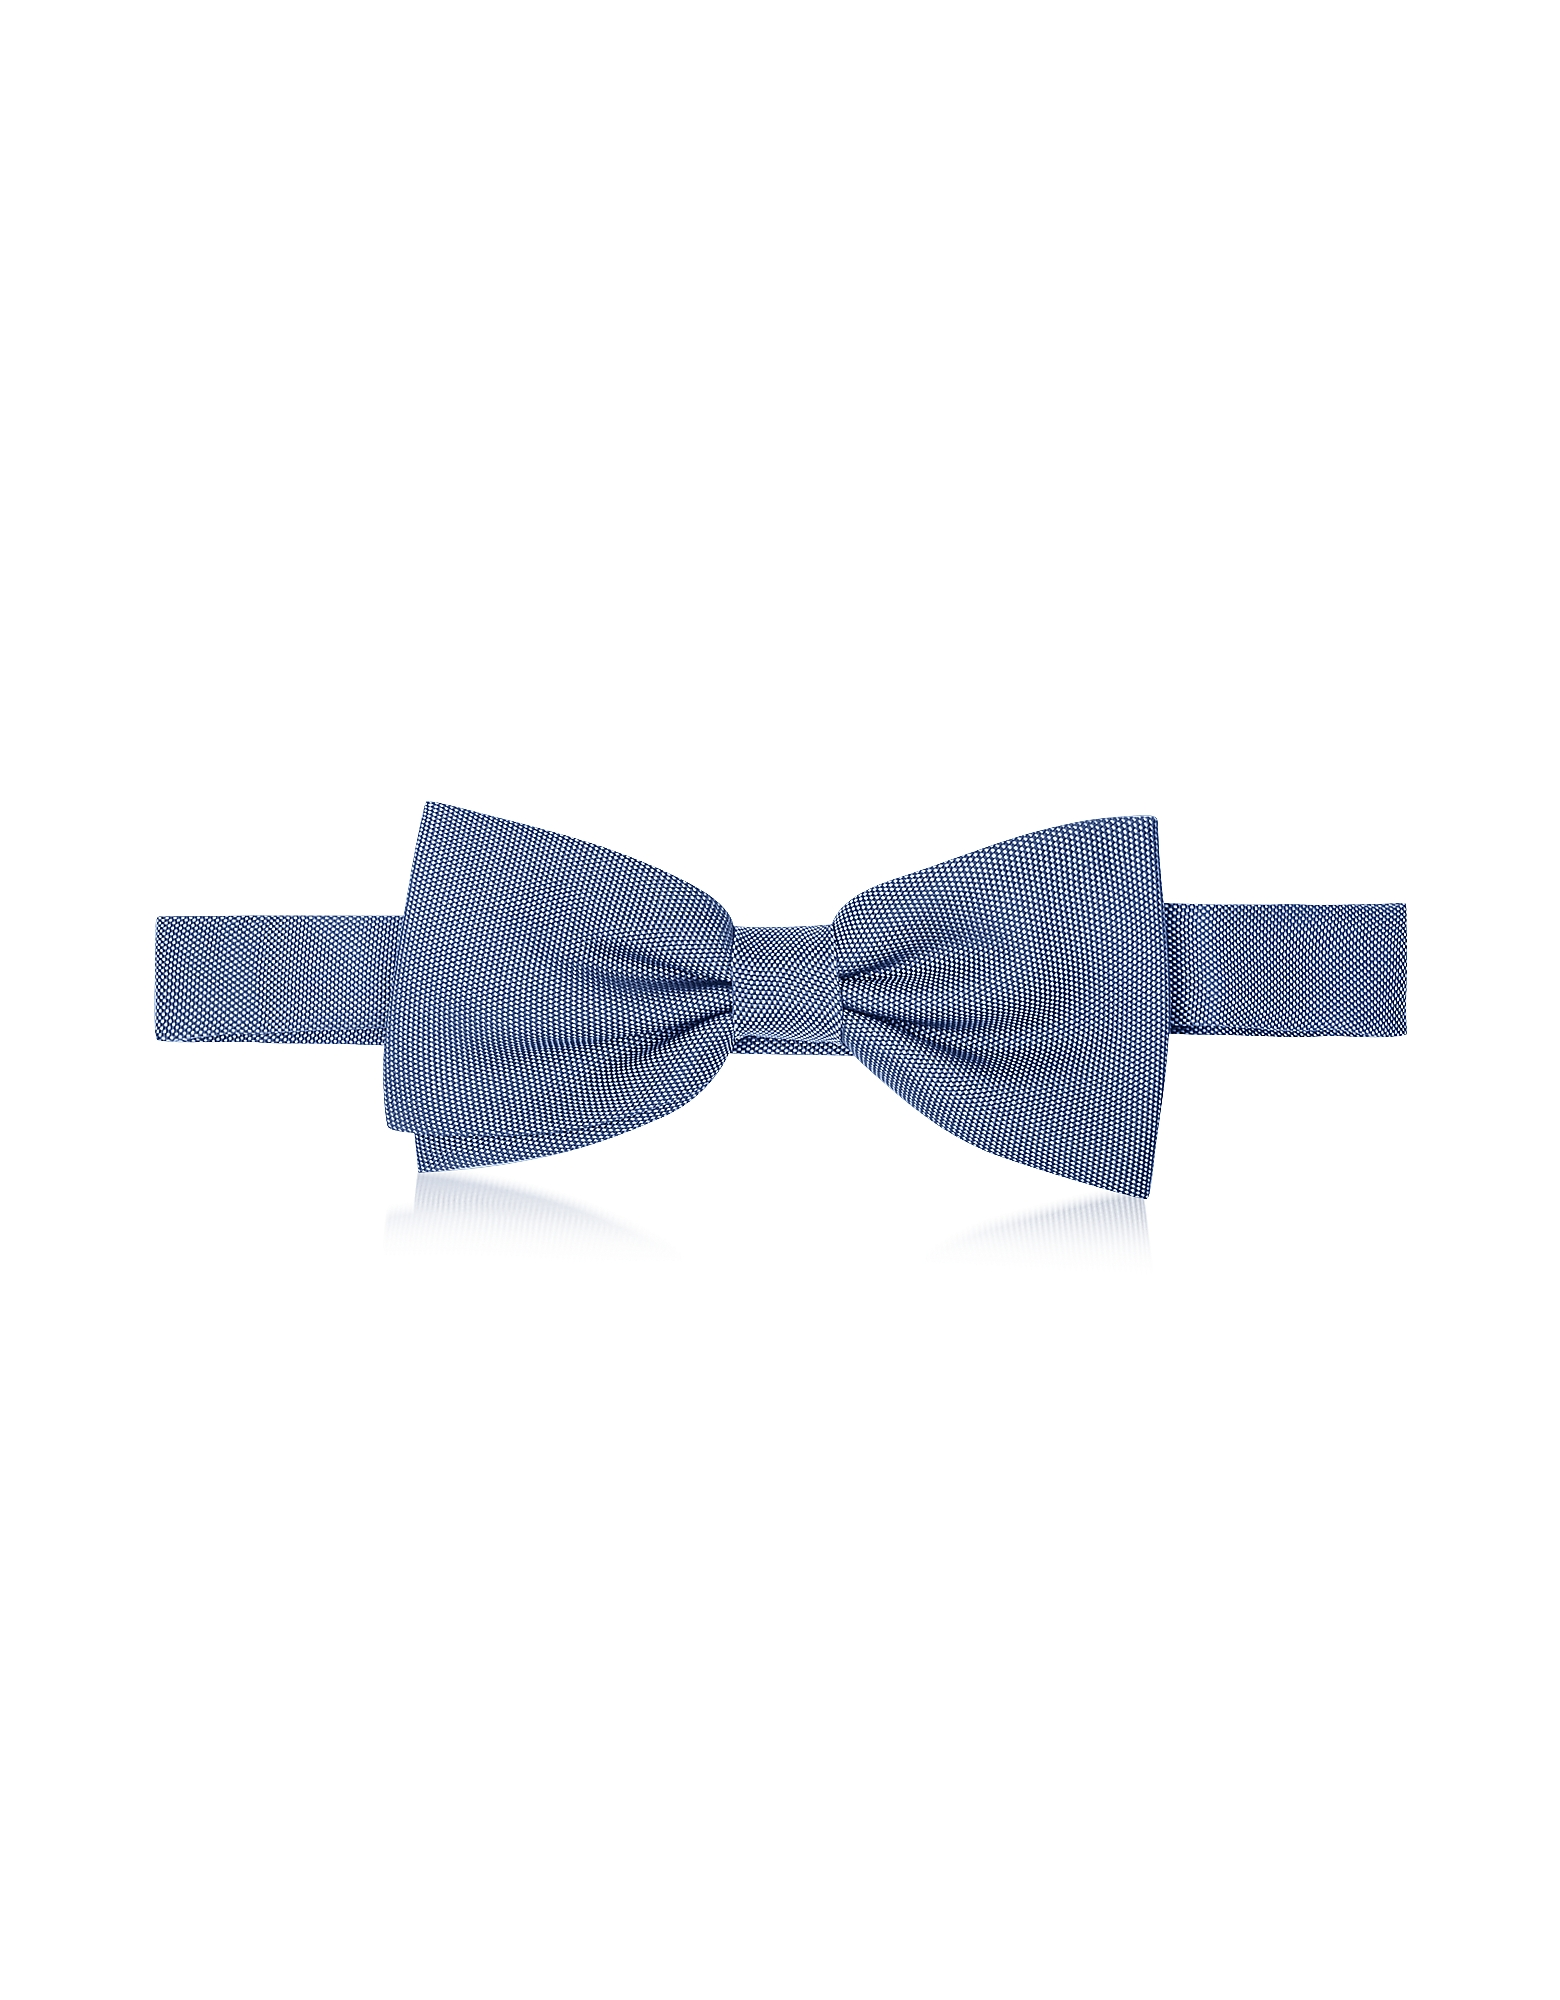 Forzieri Bowties and Cummerbunds, Woven Silk Pre-tied Bow Tie